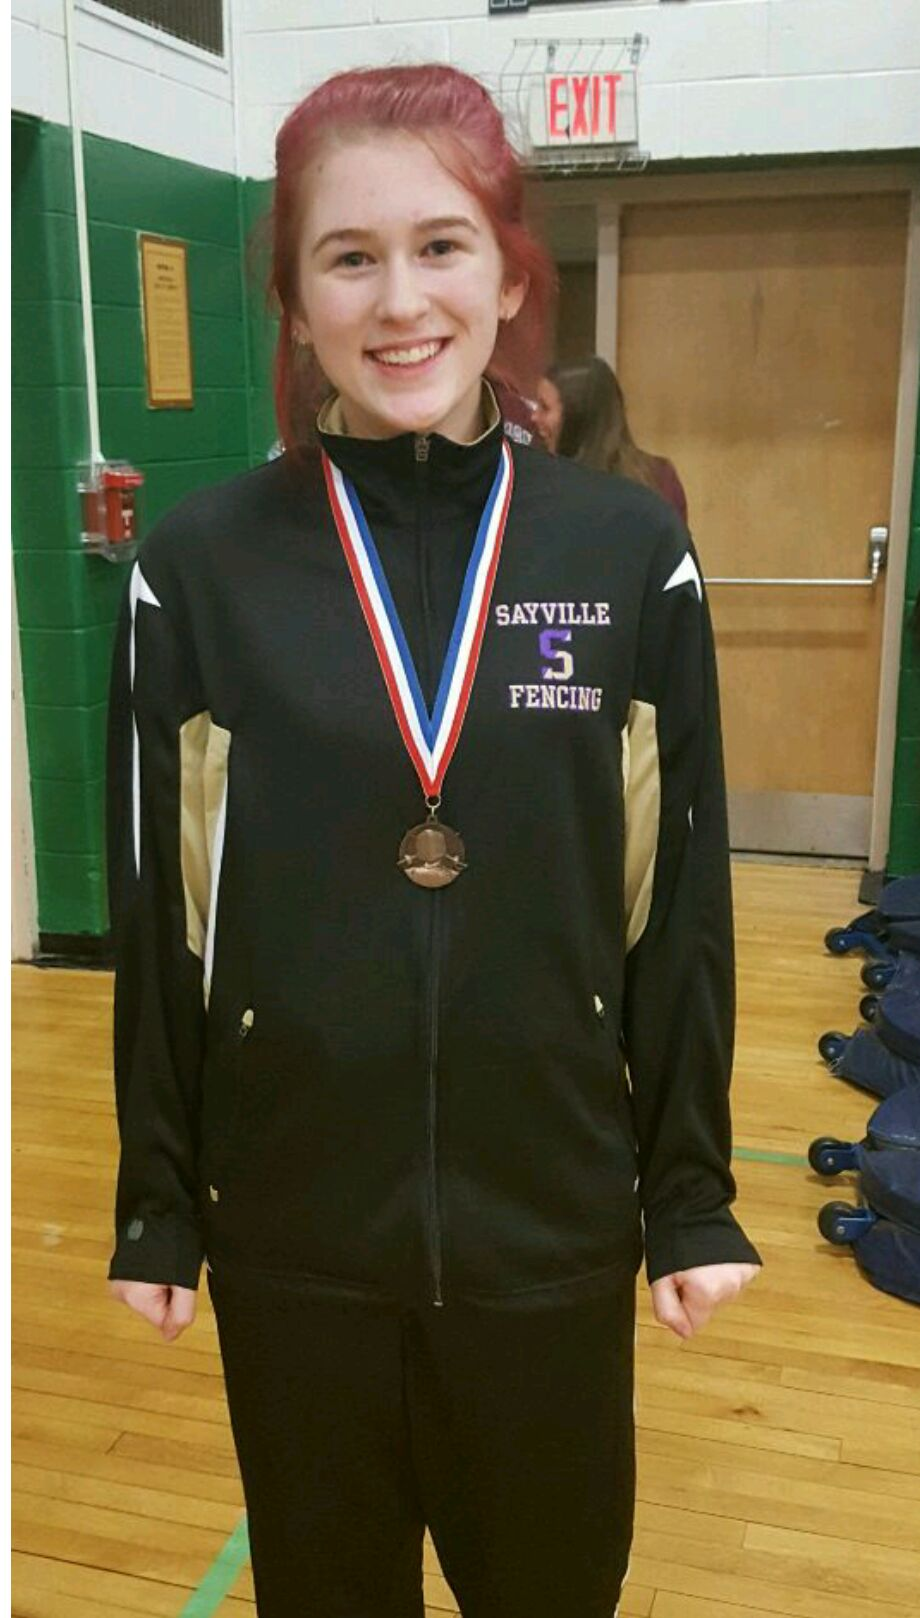 Congratulations to SFA member and Sayville High School fencer, Madelyn Wagner, for taking 3rd place in women's sabre at the Brentwood Holiday Tournament for Suffolk County high school fencing teams!